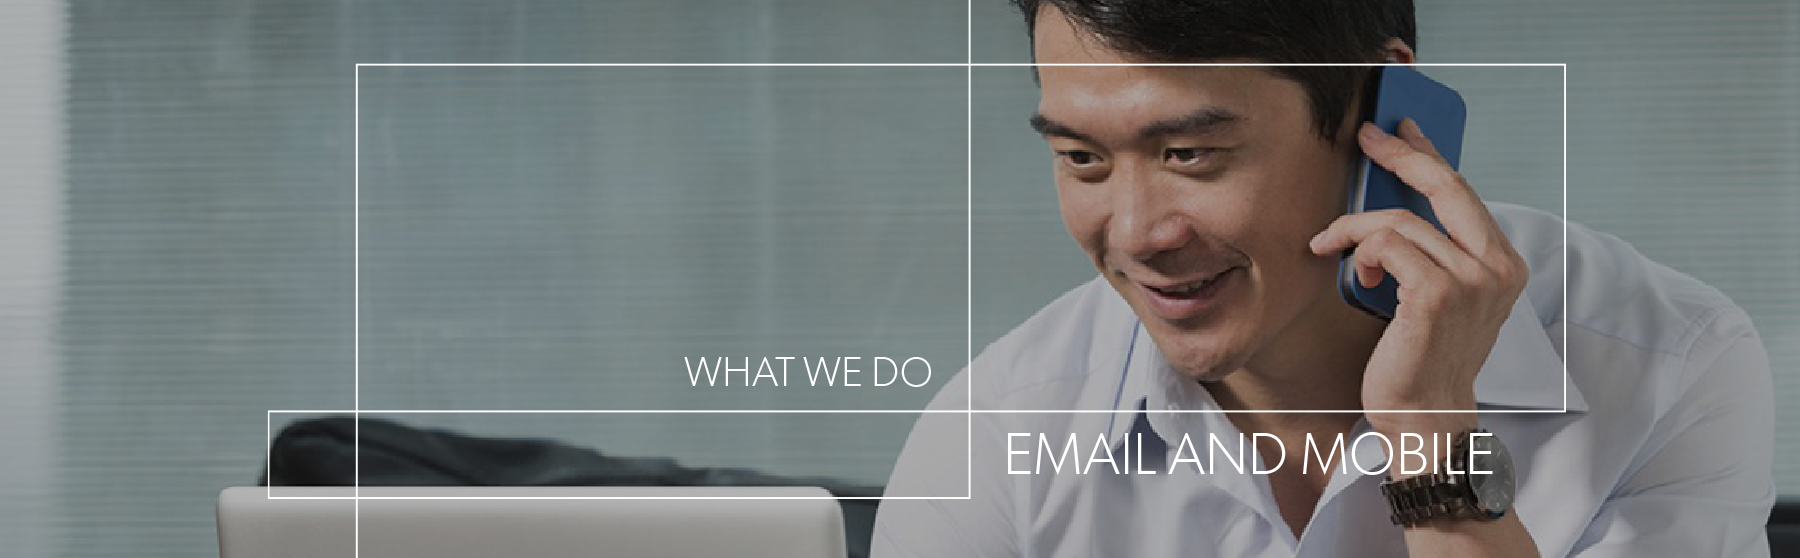 WHAT WE DO EMAIL MOBILE